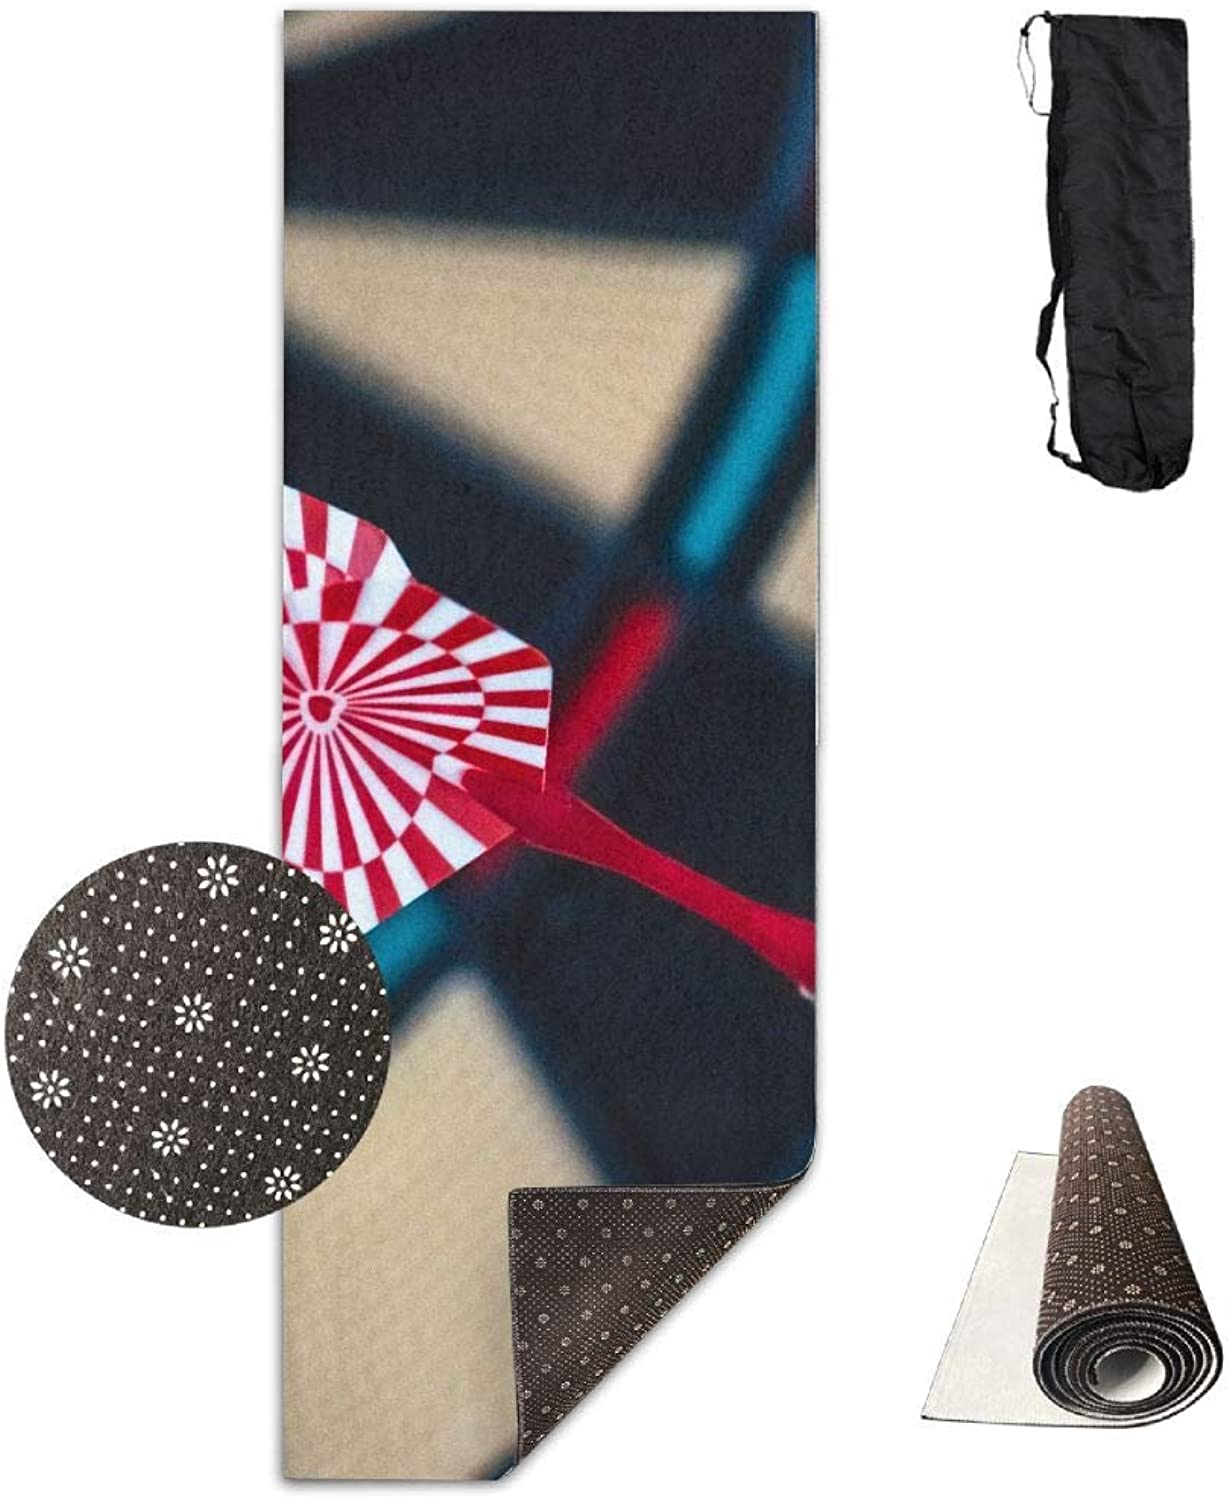 Abstract Accuracy Accurate Aim Yoga Mat  Advanced Yoga Mat  NonSlip Lining  Easy to Clean  LatexFree  Lightweight and Durable  Long 180 Width 61cm